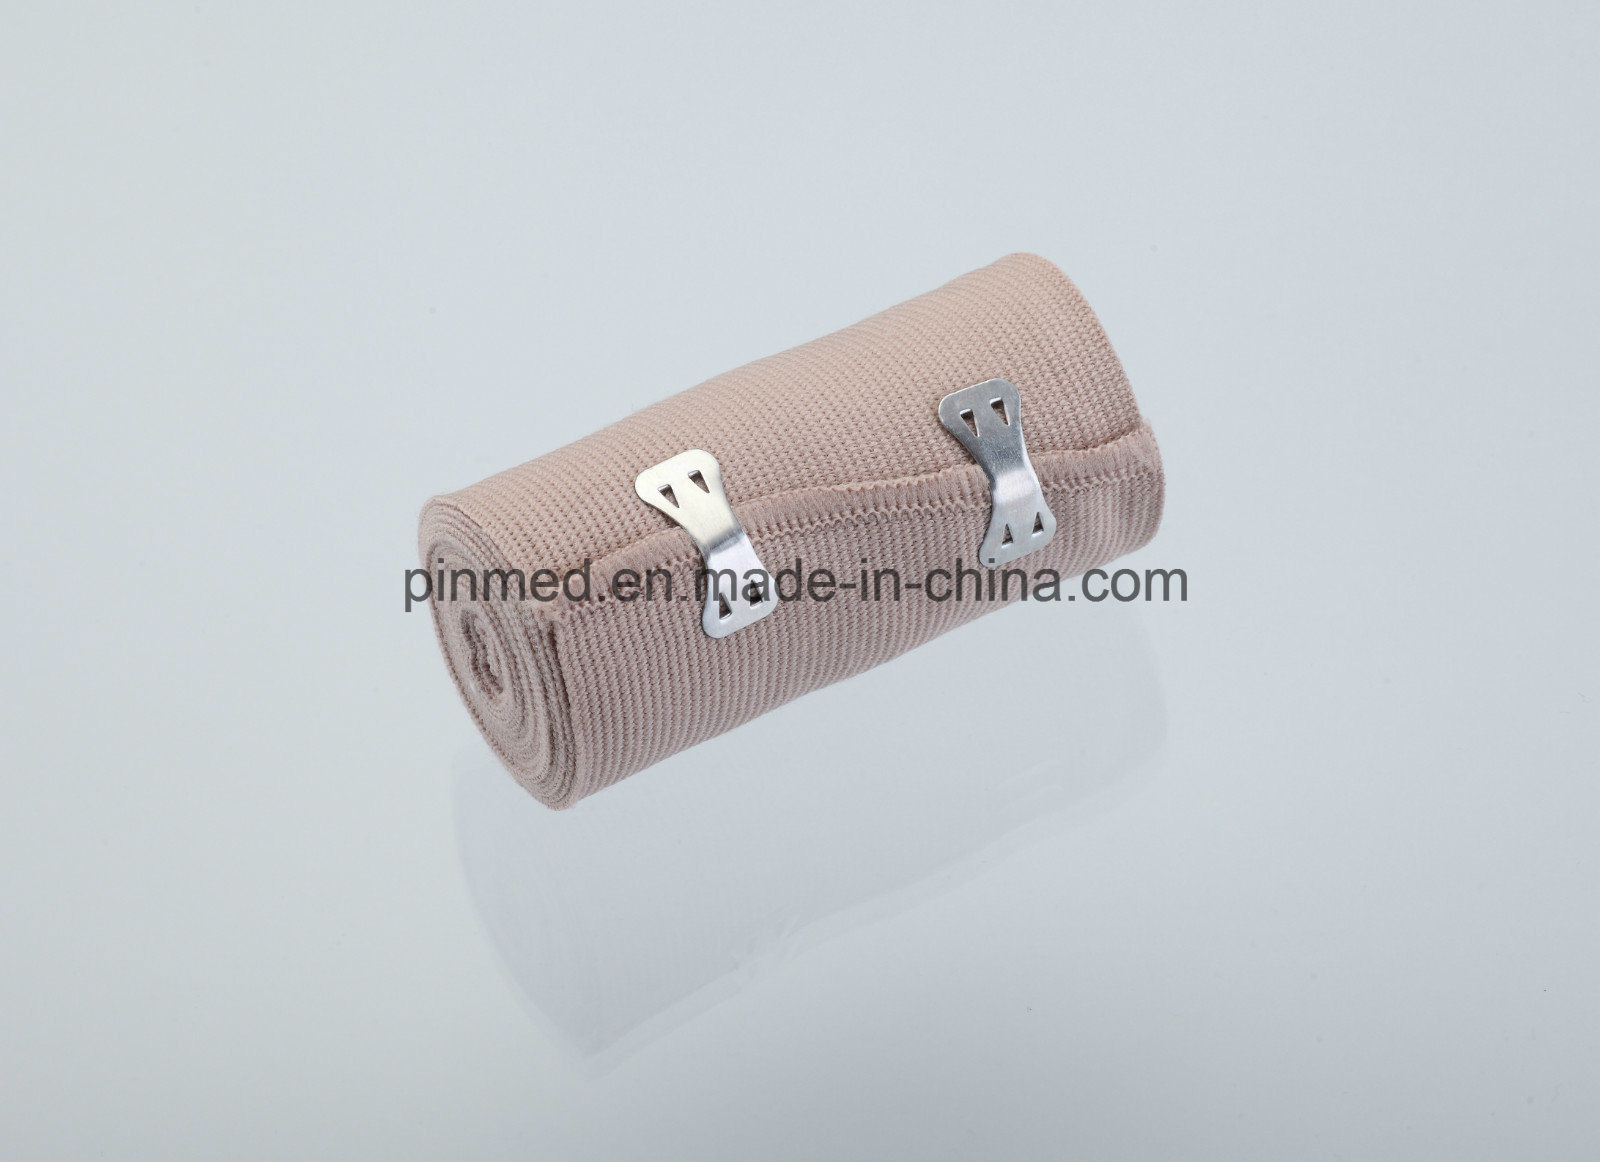 Disposable High Elastic Bandage, Cotton and Polyester